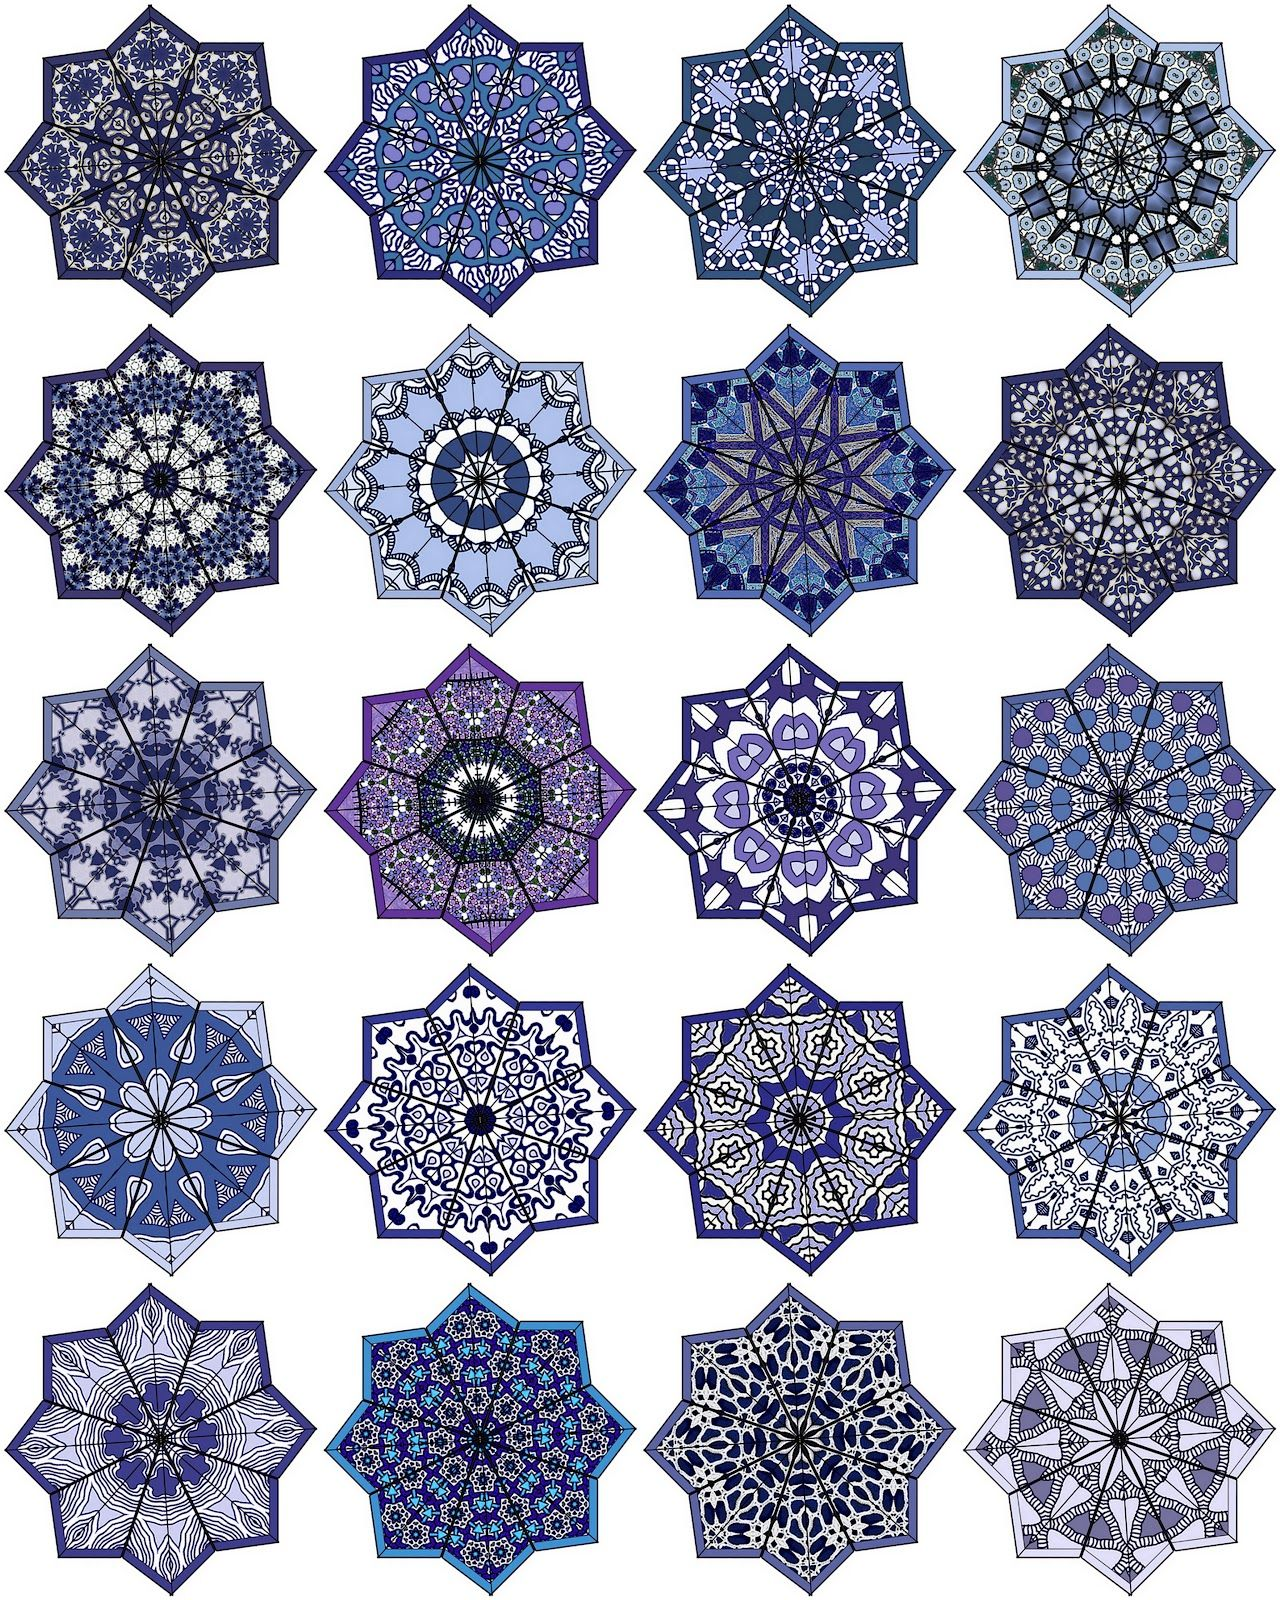 Artbyjean Paper Crafts Eight Ppointed Star Shaped Medallions 20 Different Ones On Digital Collage Sheet Islamic Art Pattern Pattern Art Geometric Art